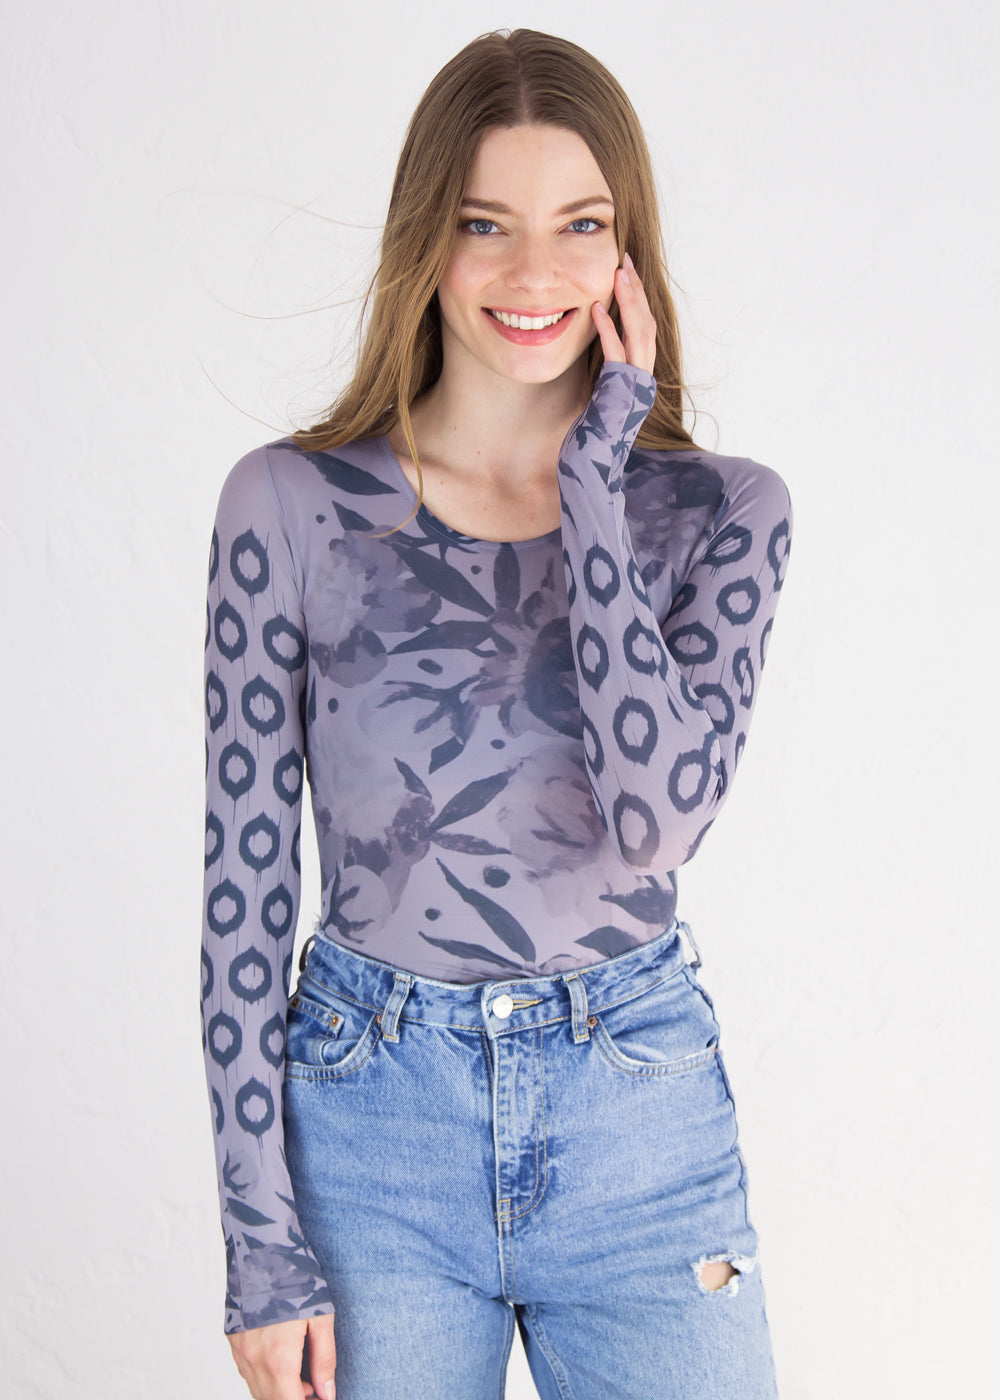 Boho Peony Crew Neck Top - New Colors!